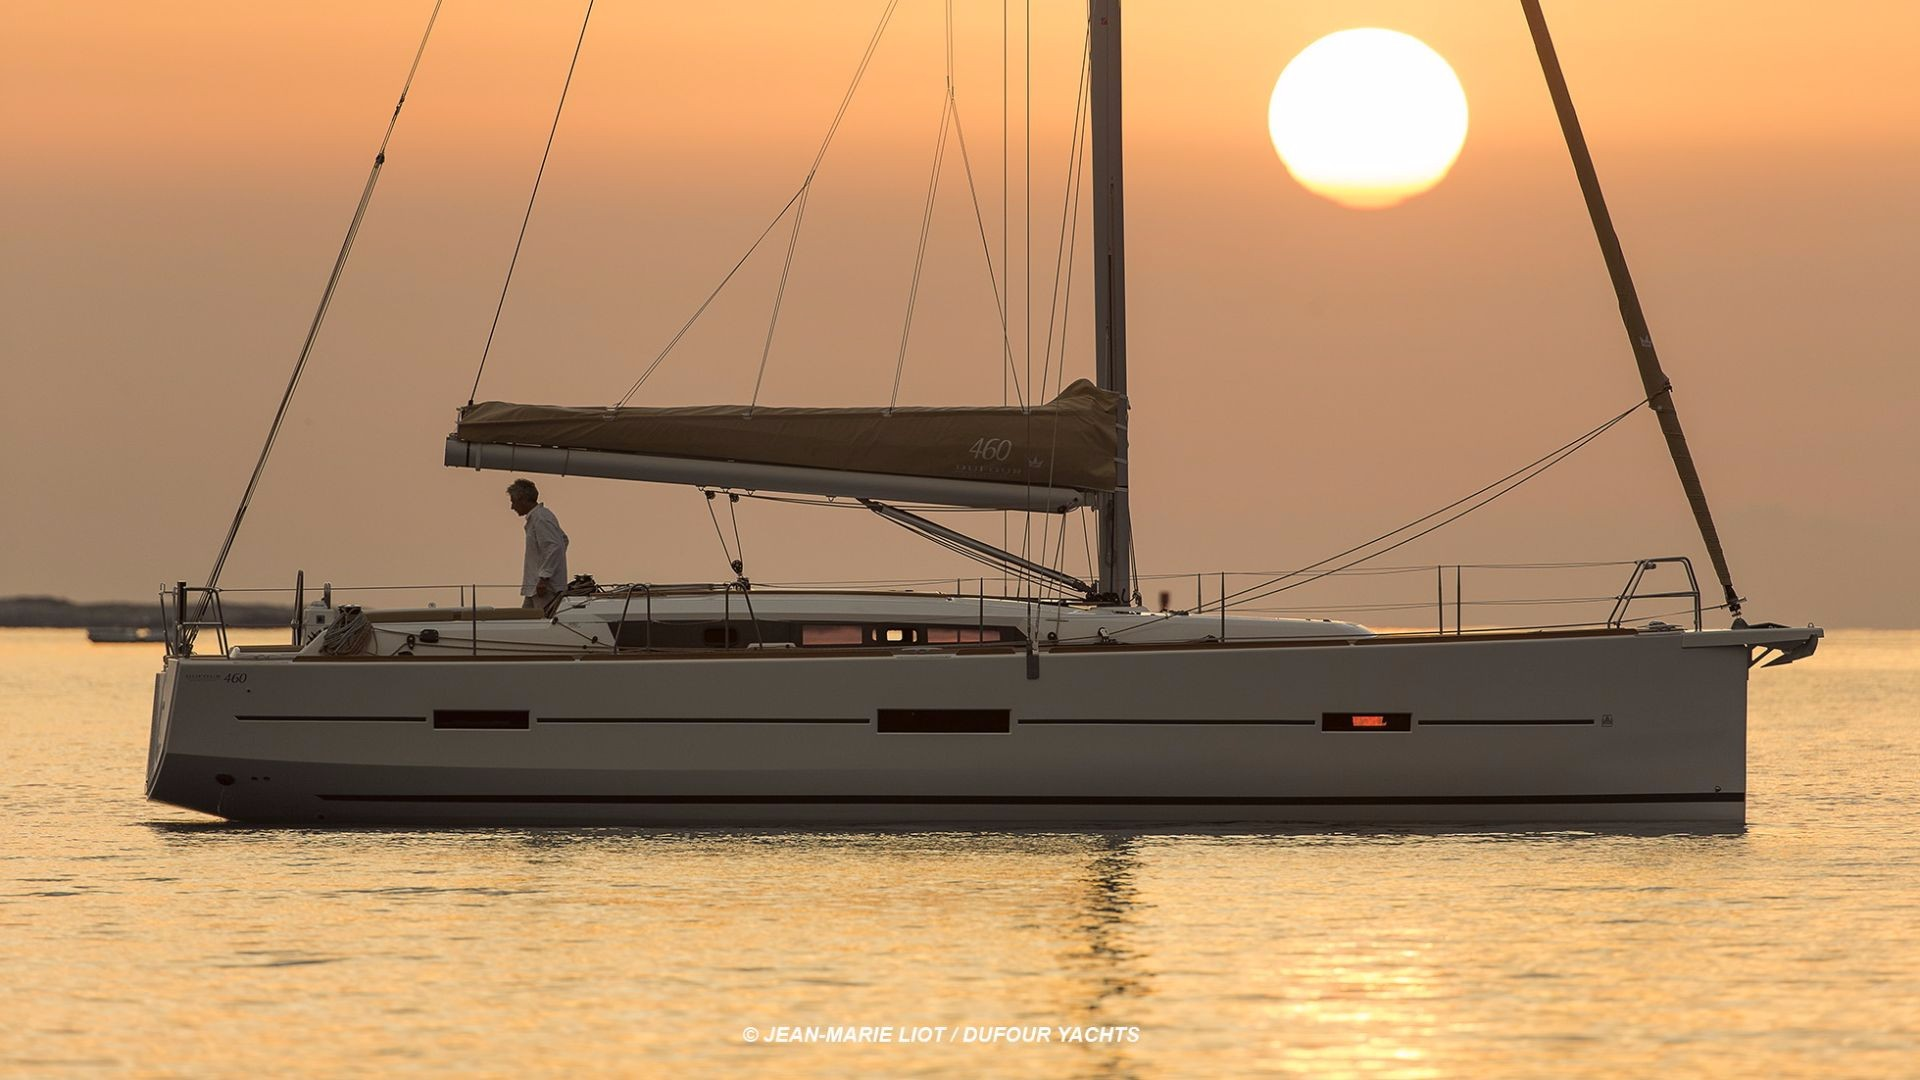 Dufour 460 GL Liberty sunset